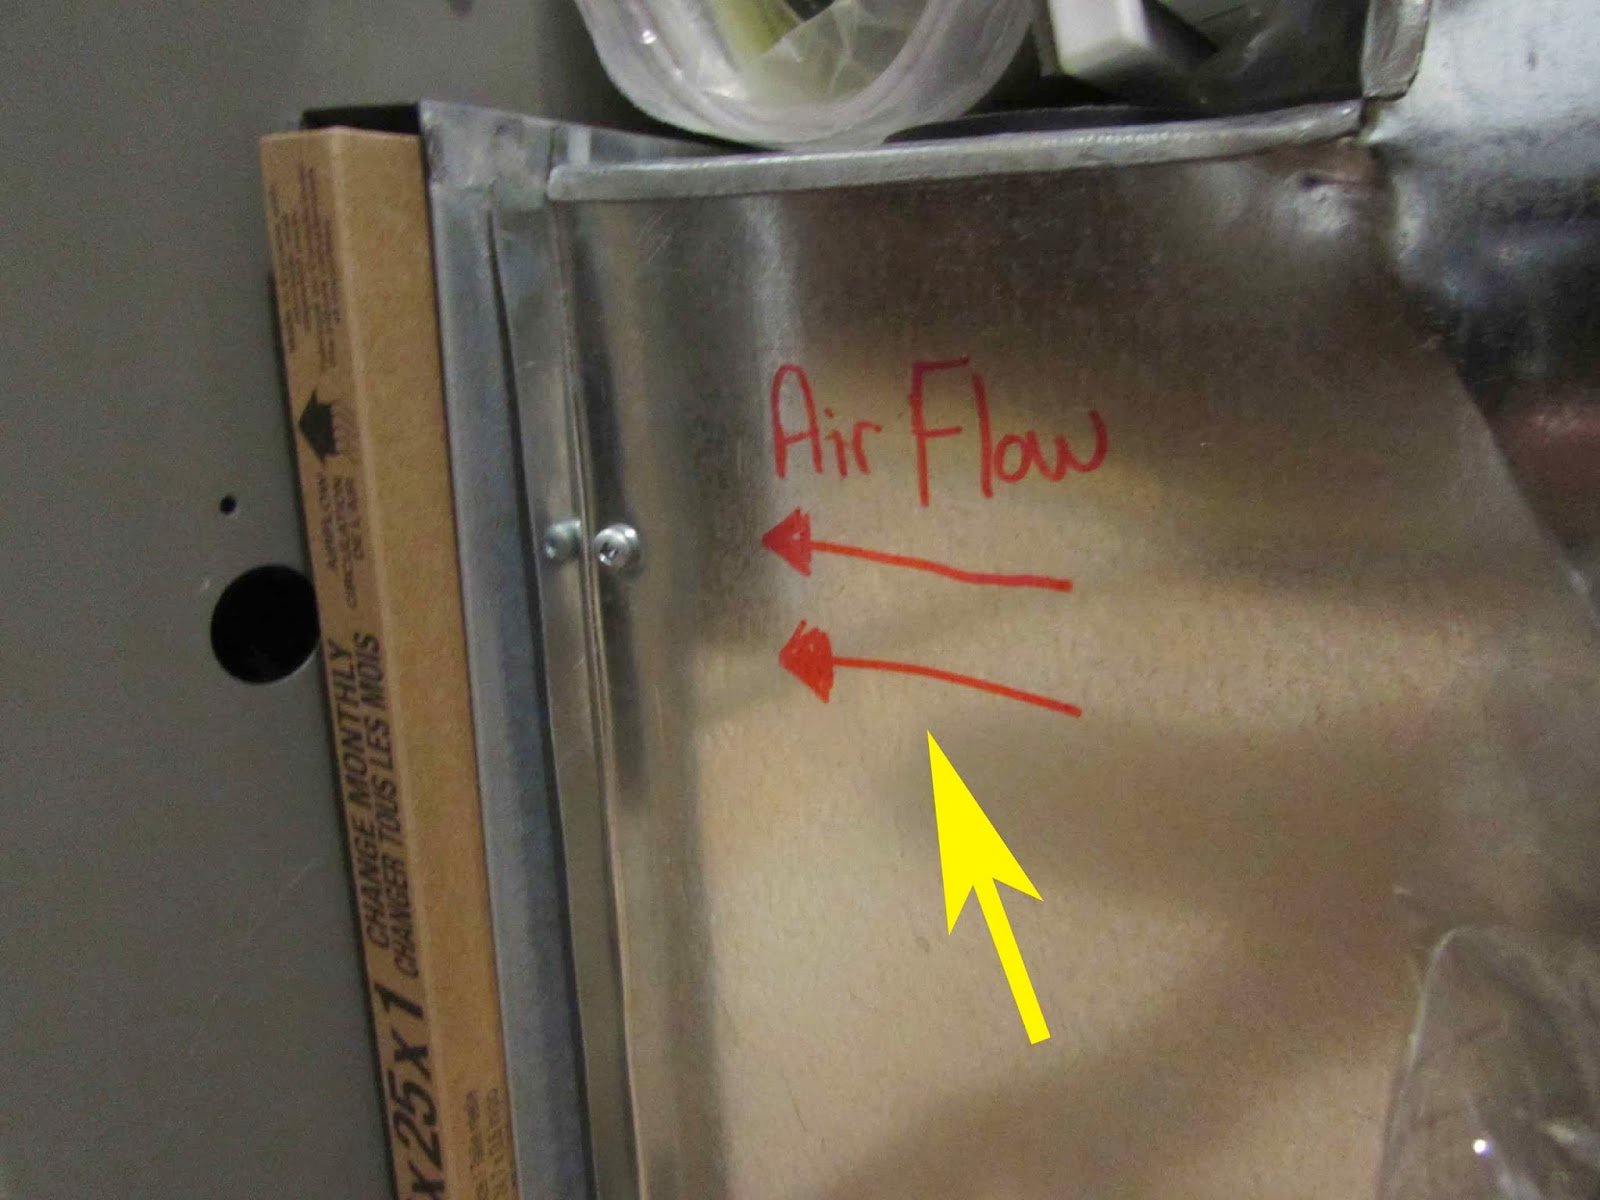 Furnace air flow, note arrow on filter is the same direction ...